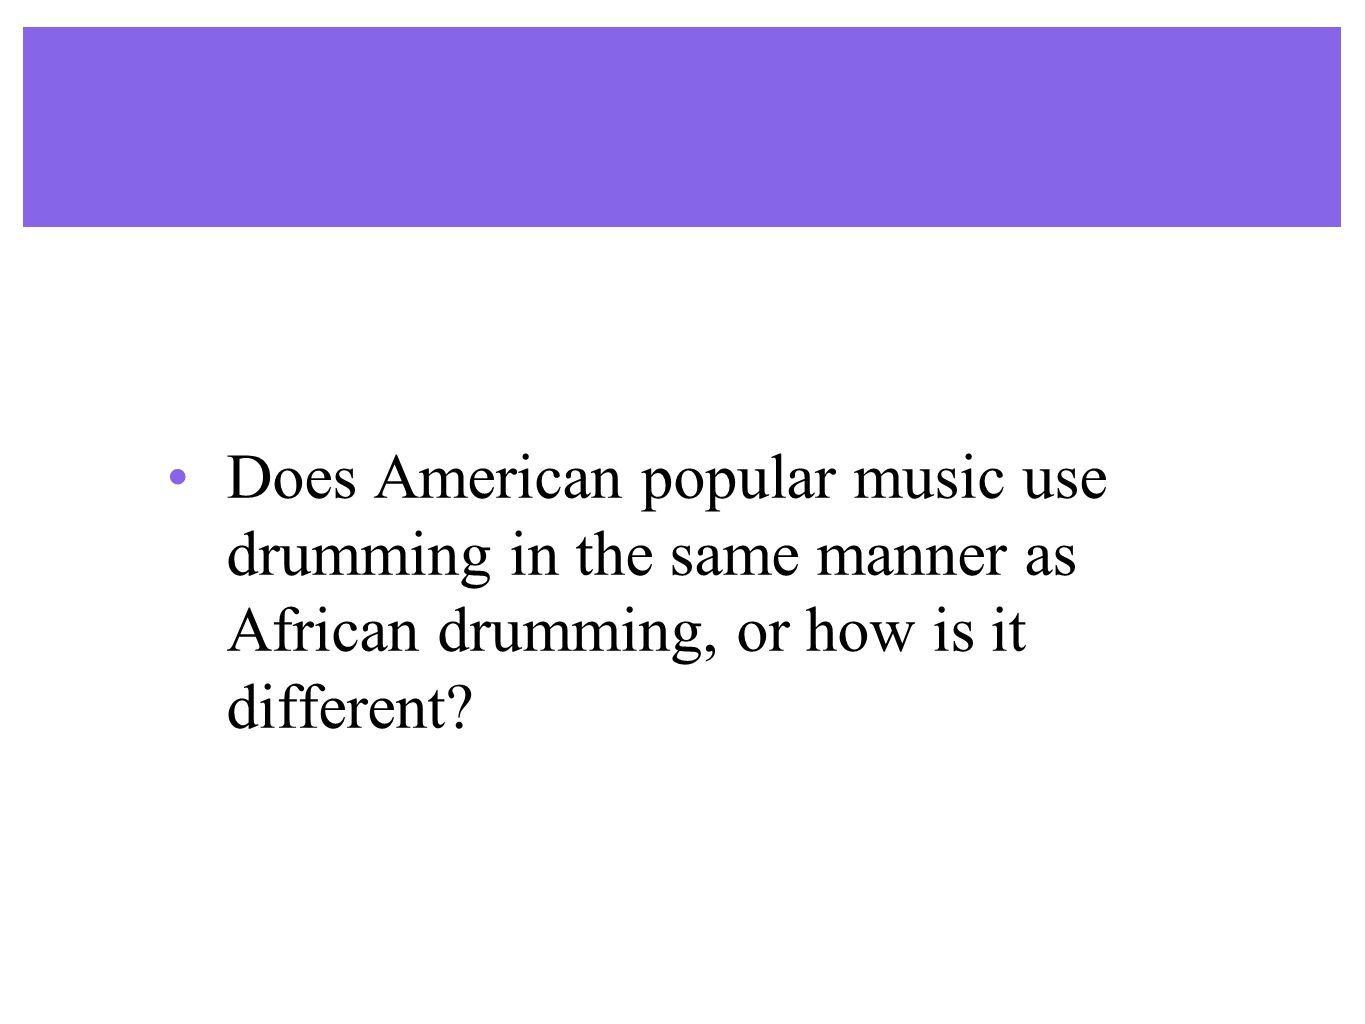 Does American popular music use drumming in the same manner as African drumming, or how is it different